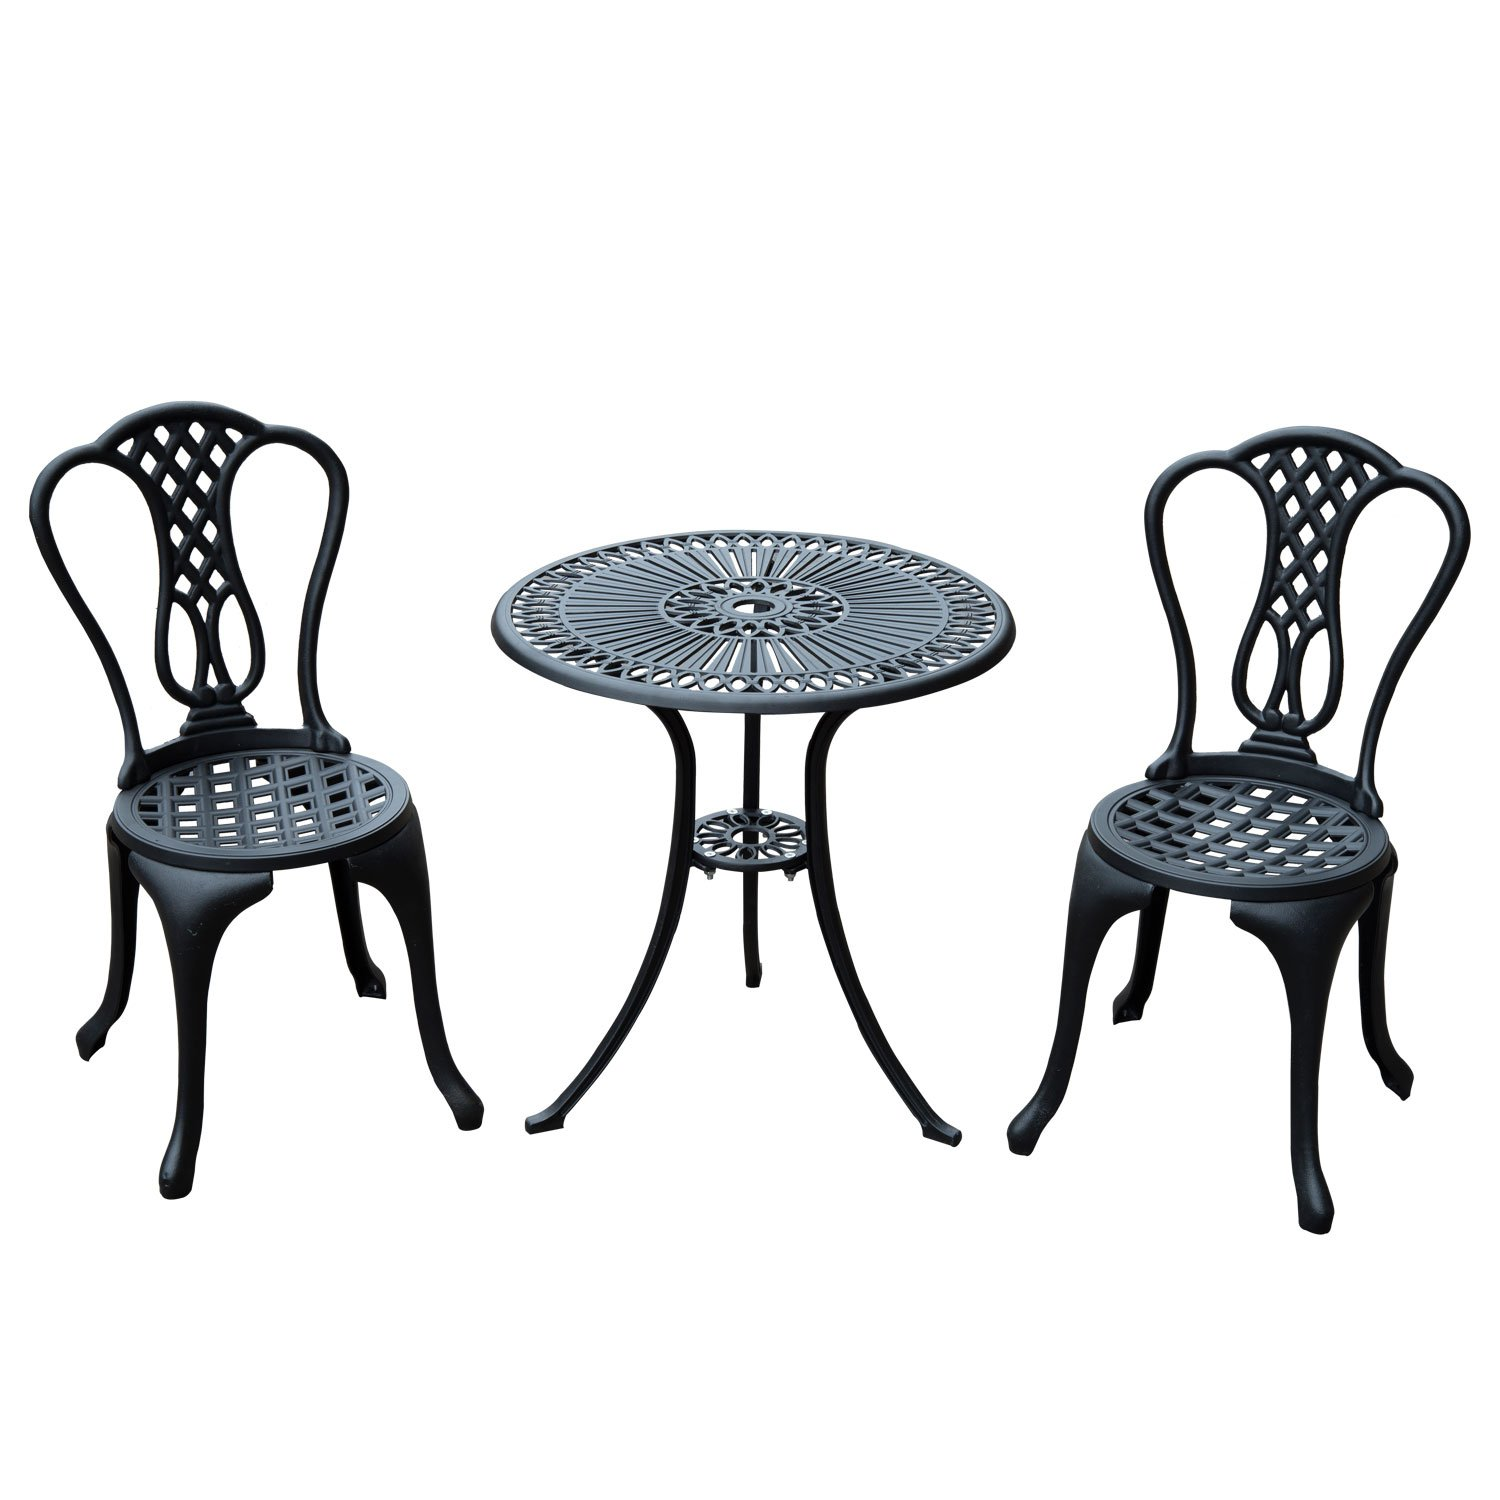 Salon de jardin mobilier de jardin bistrot 2 chaises + 1 table en ...